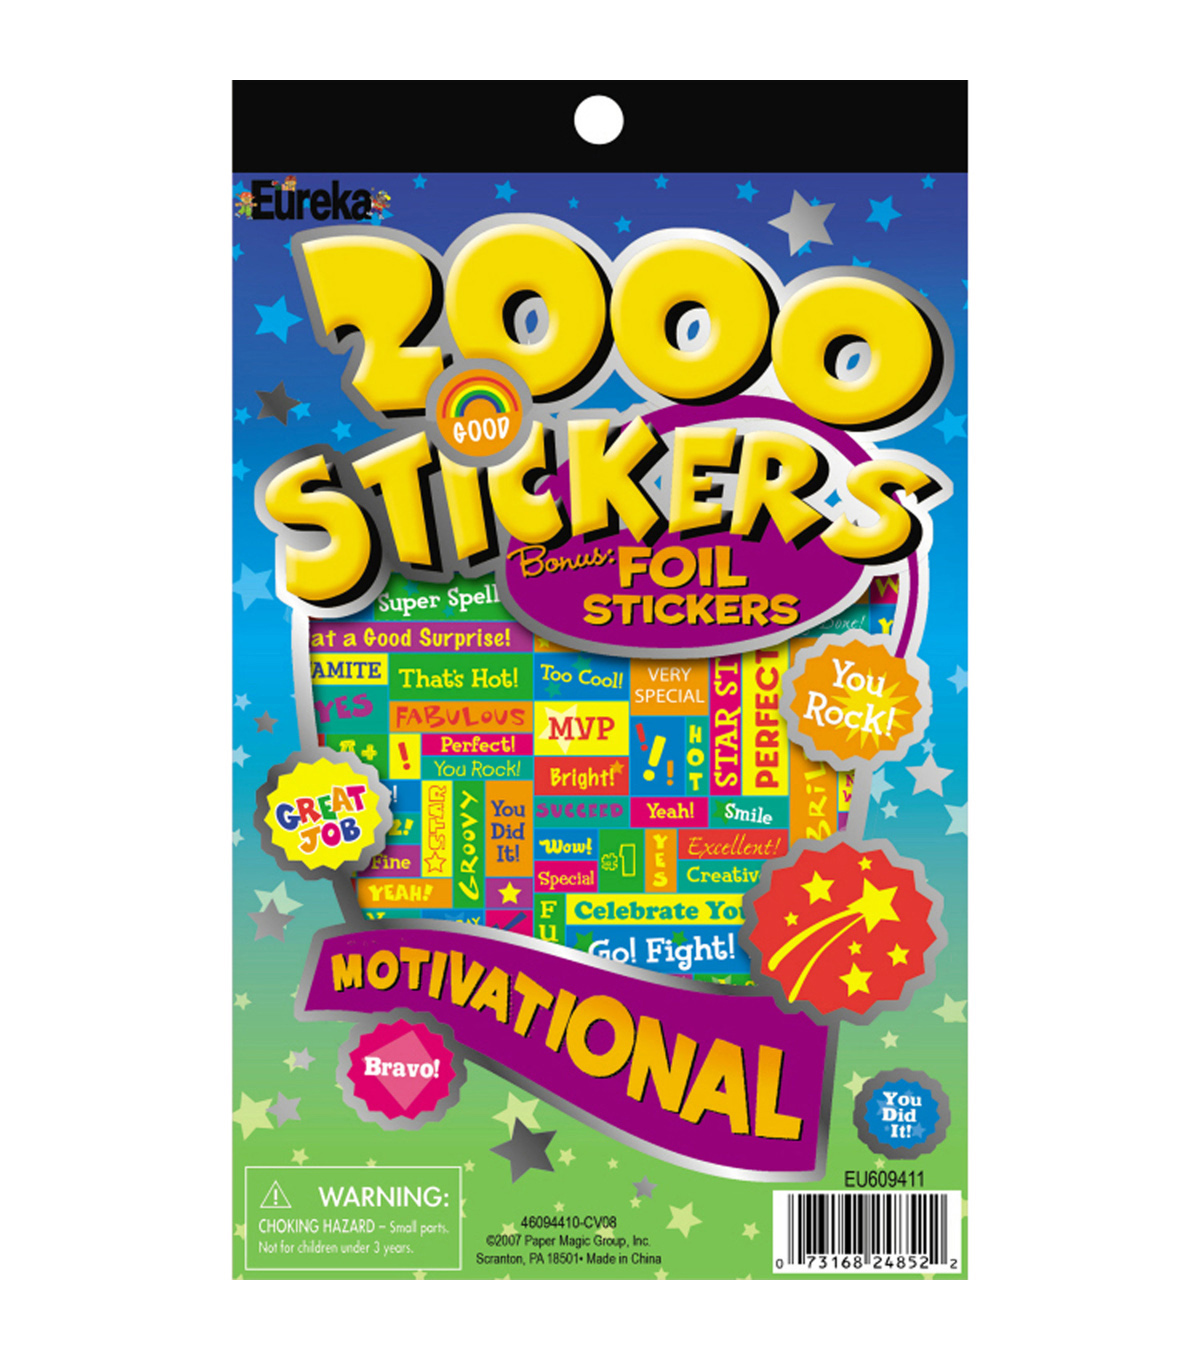 Eureka 2000 Motivational Sticker Book, 2000 Per Book, 6 Books